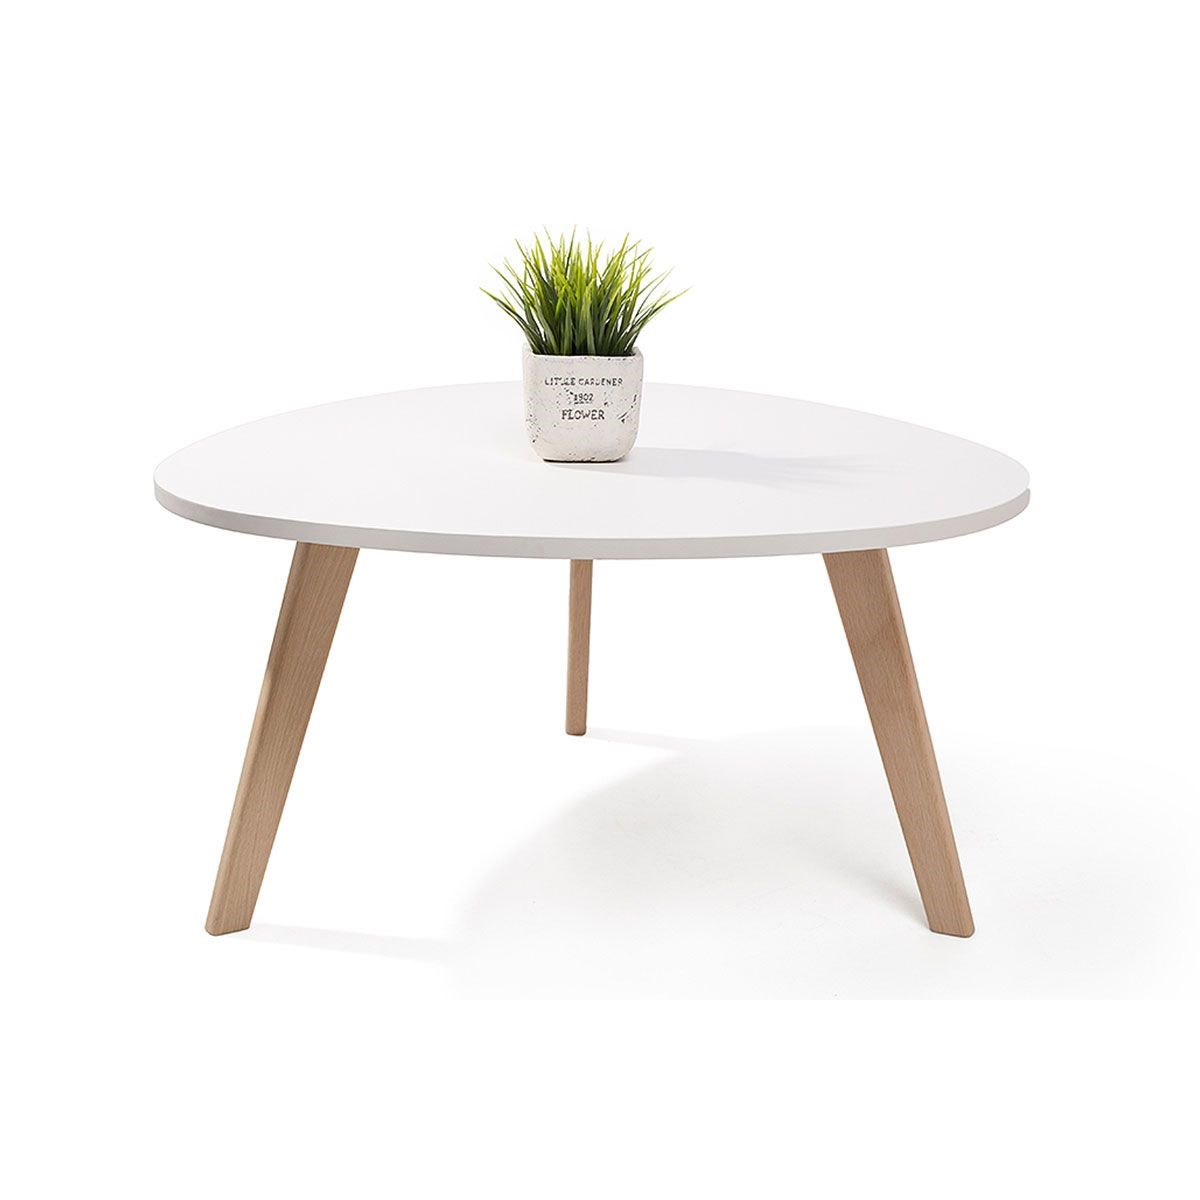 Meuble Scandinave Table Basse Of Alta Table Basse Scandinave Aspect Galet Satin Pieds En